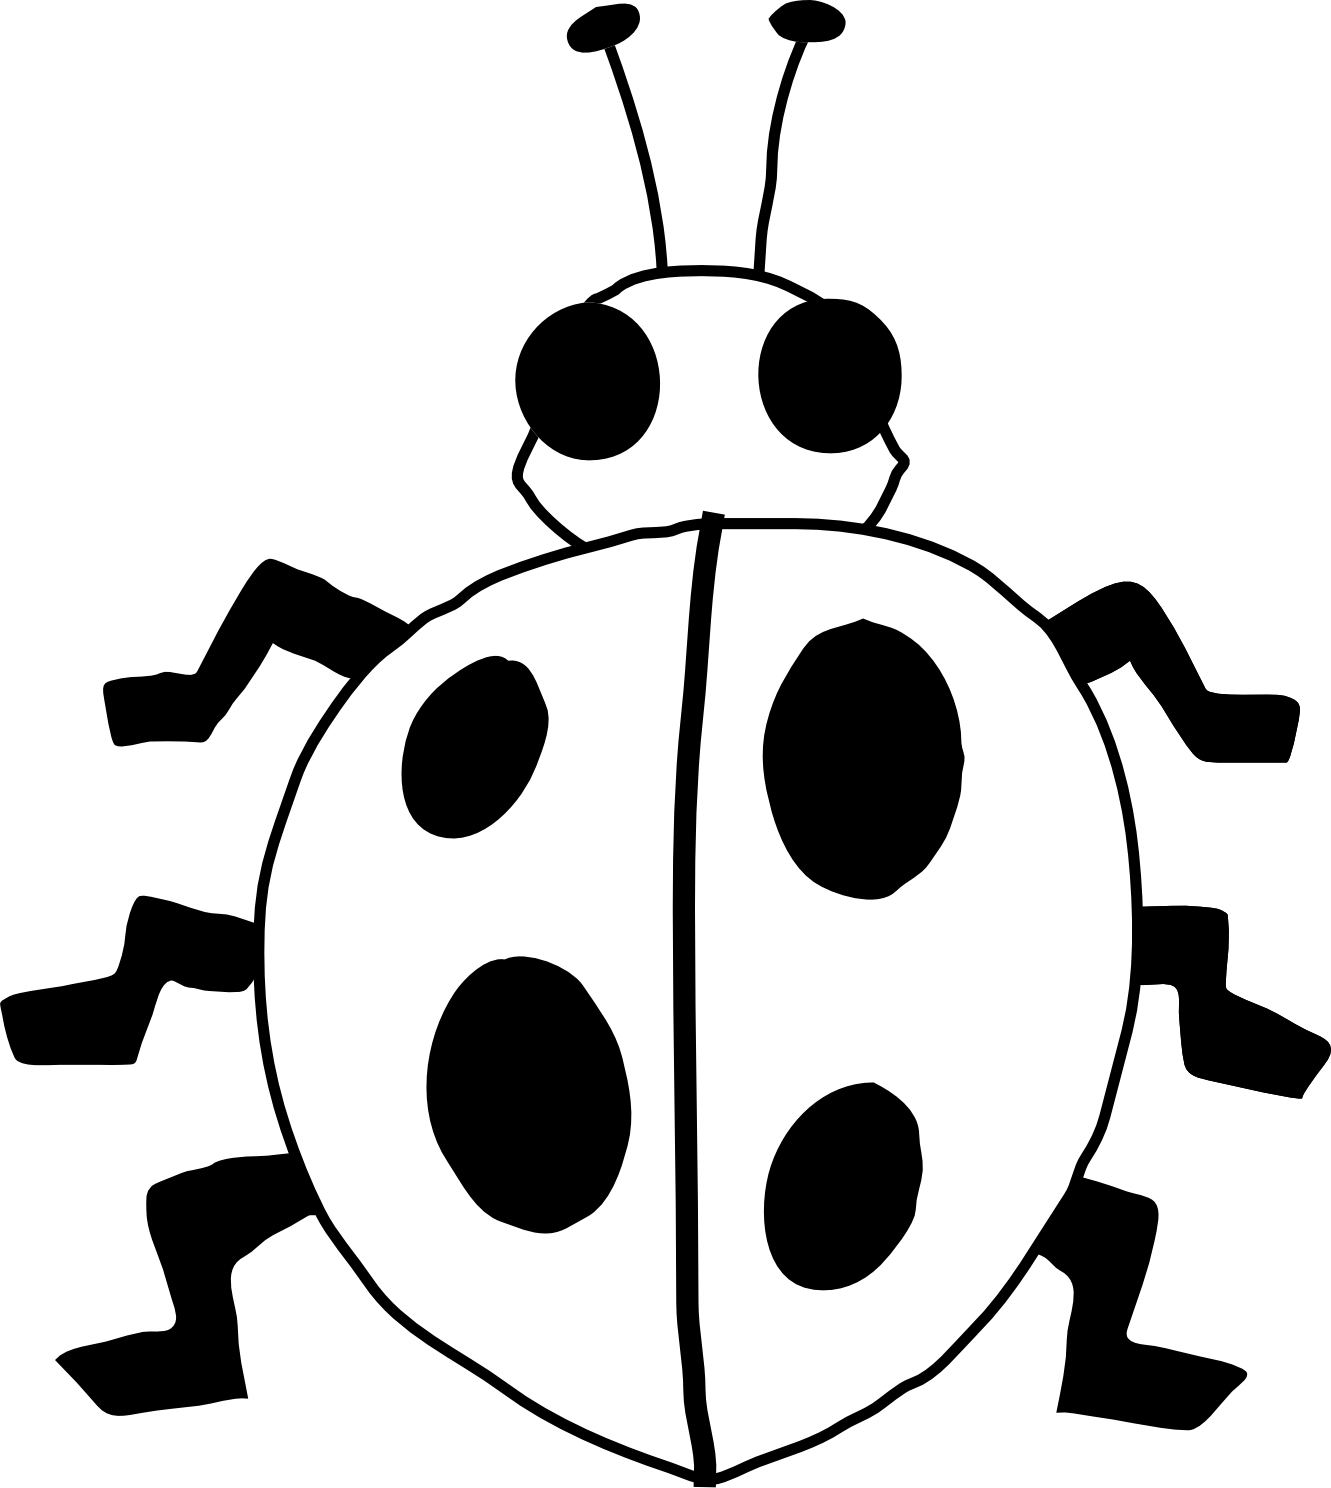 Lady Beetle clipart black and white Panda Clip ladybug%20drawing%20black%20and%20white Art And